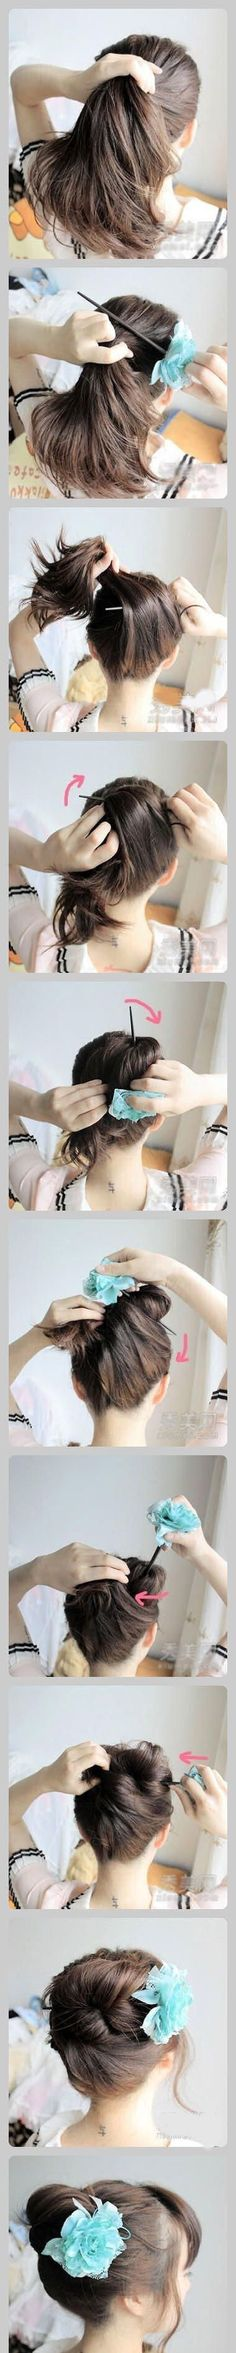 diy updo hair style, I always do this with a pencil...I just need to glue a flower to it lol!